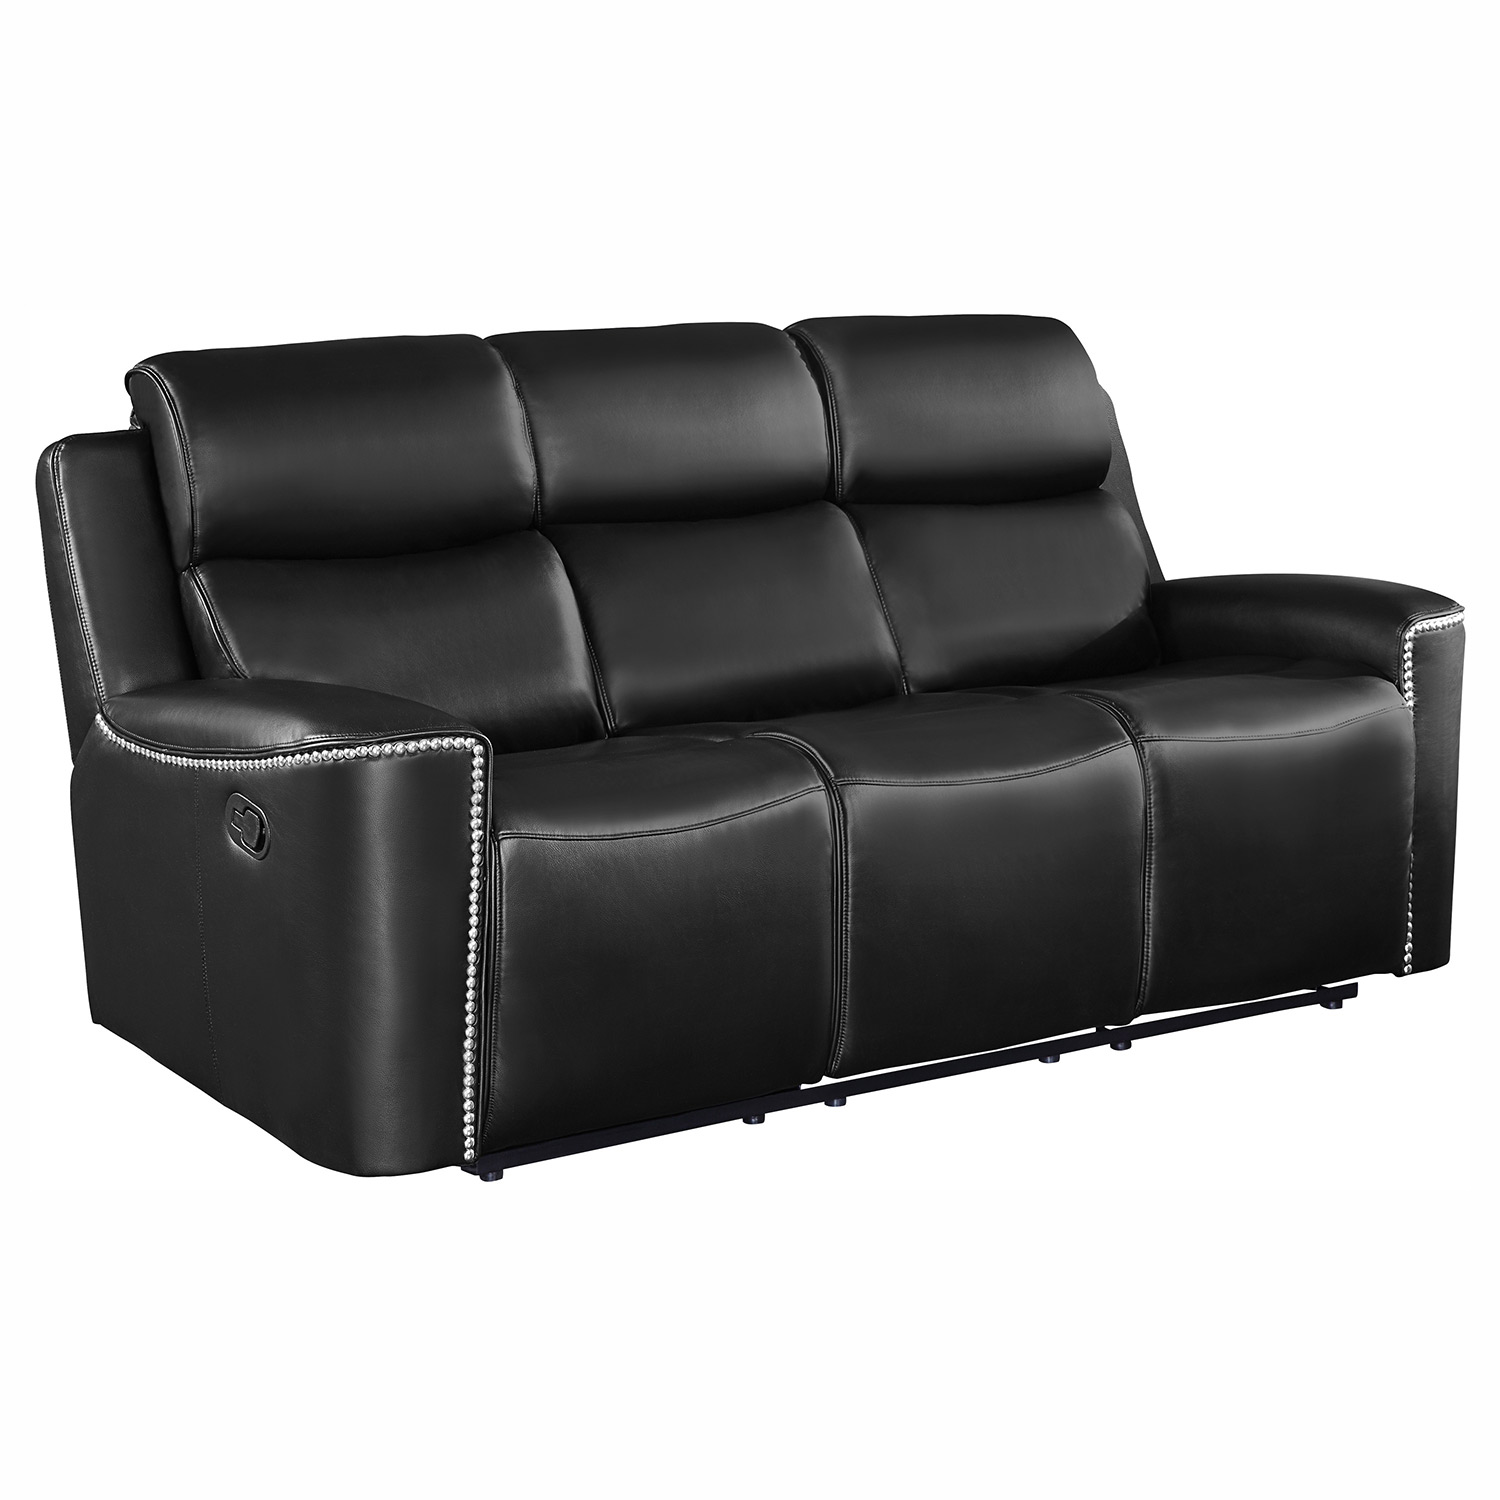 Homelegance Altair Double Reclining Sofa - Black